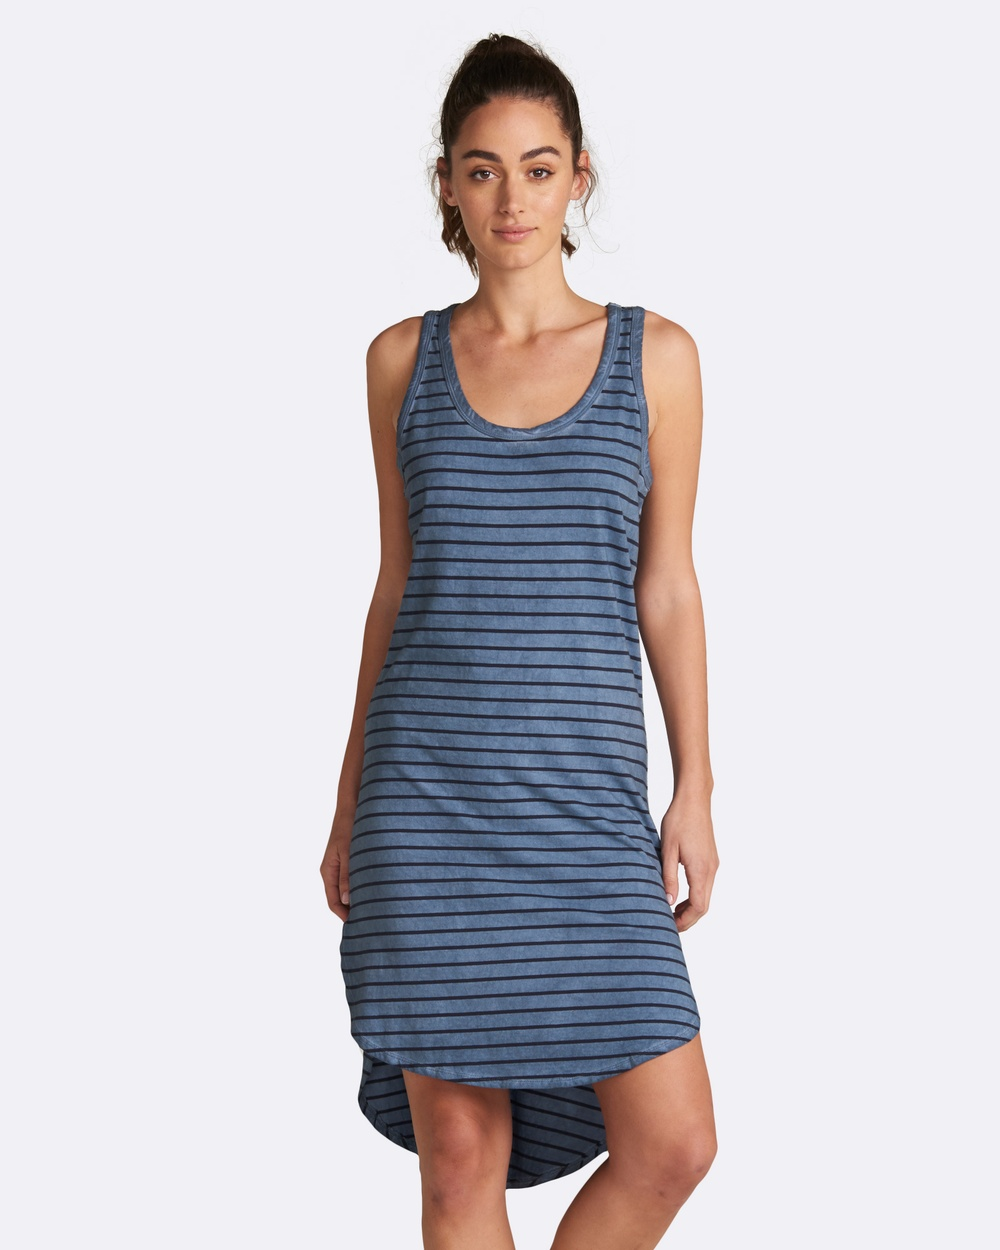 jac + mooki Polly Stripe Dress Dresses Blue Polly Stripe Dress